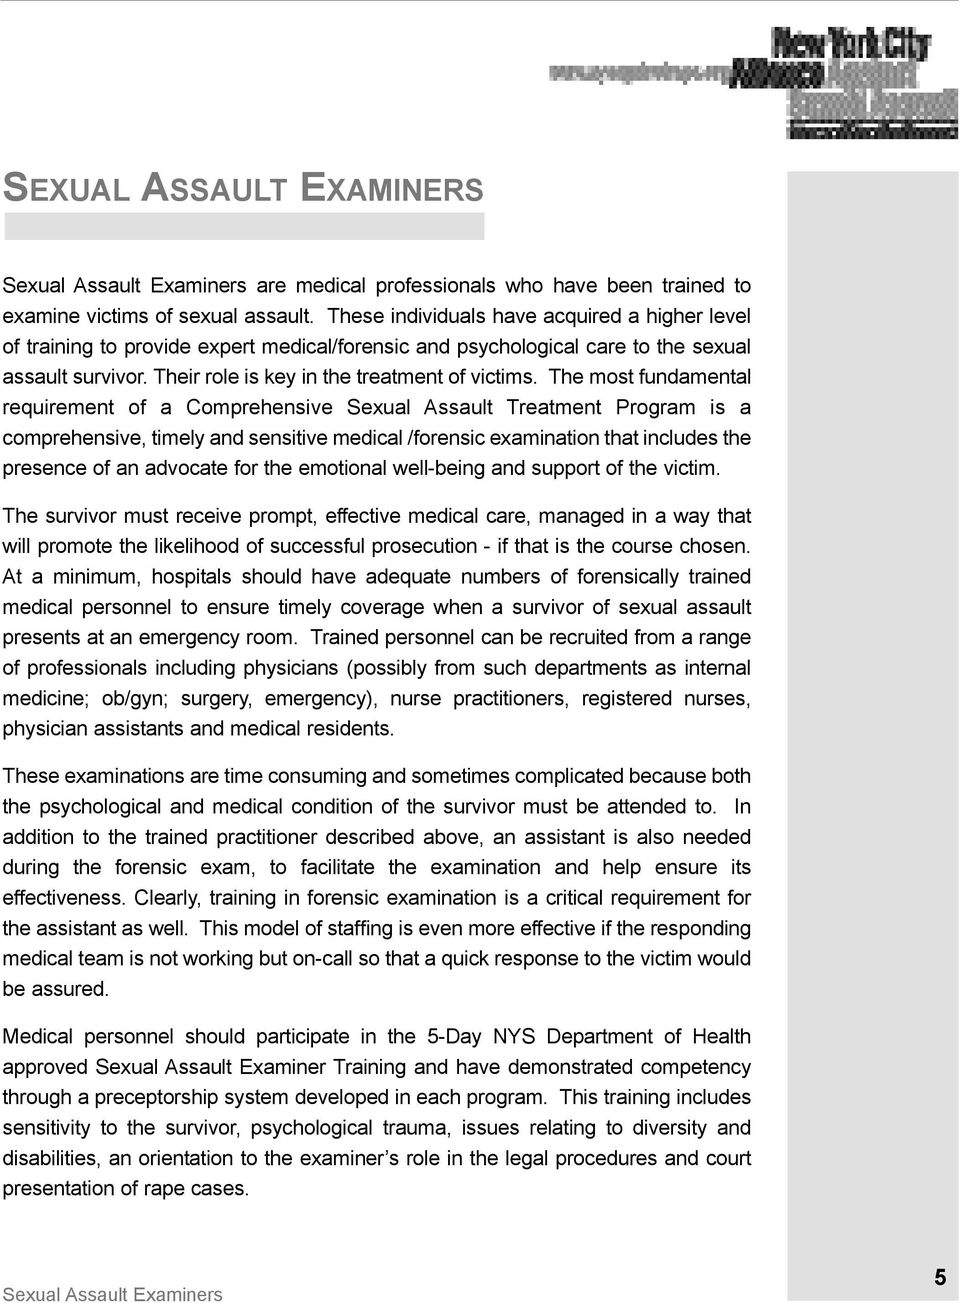 The most fundamental requirement of a Comprehensive Sexual Assault Treatment Program is a comprehensive, timely and sensitive medical /forensic examination that includes the presence of an advocate